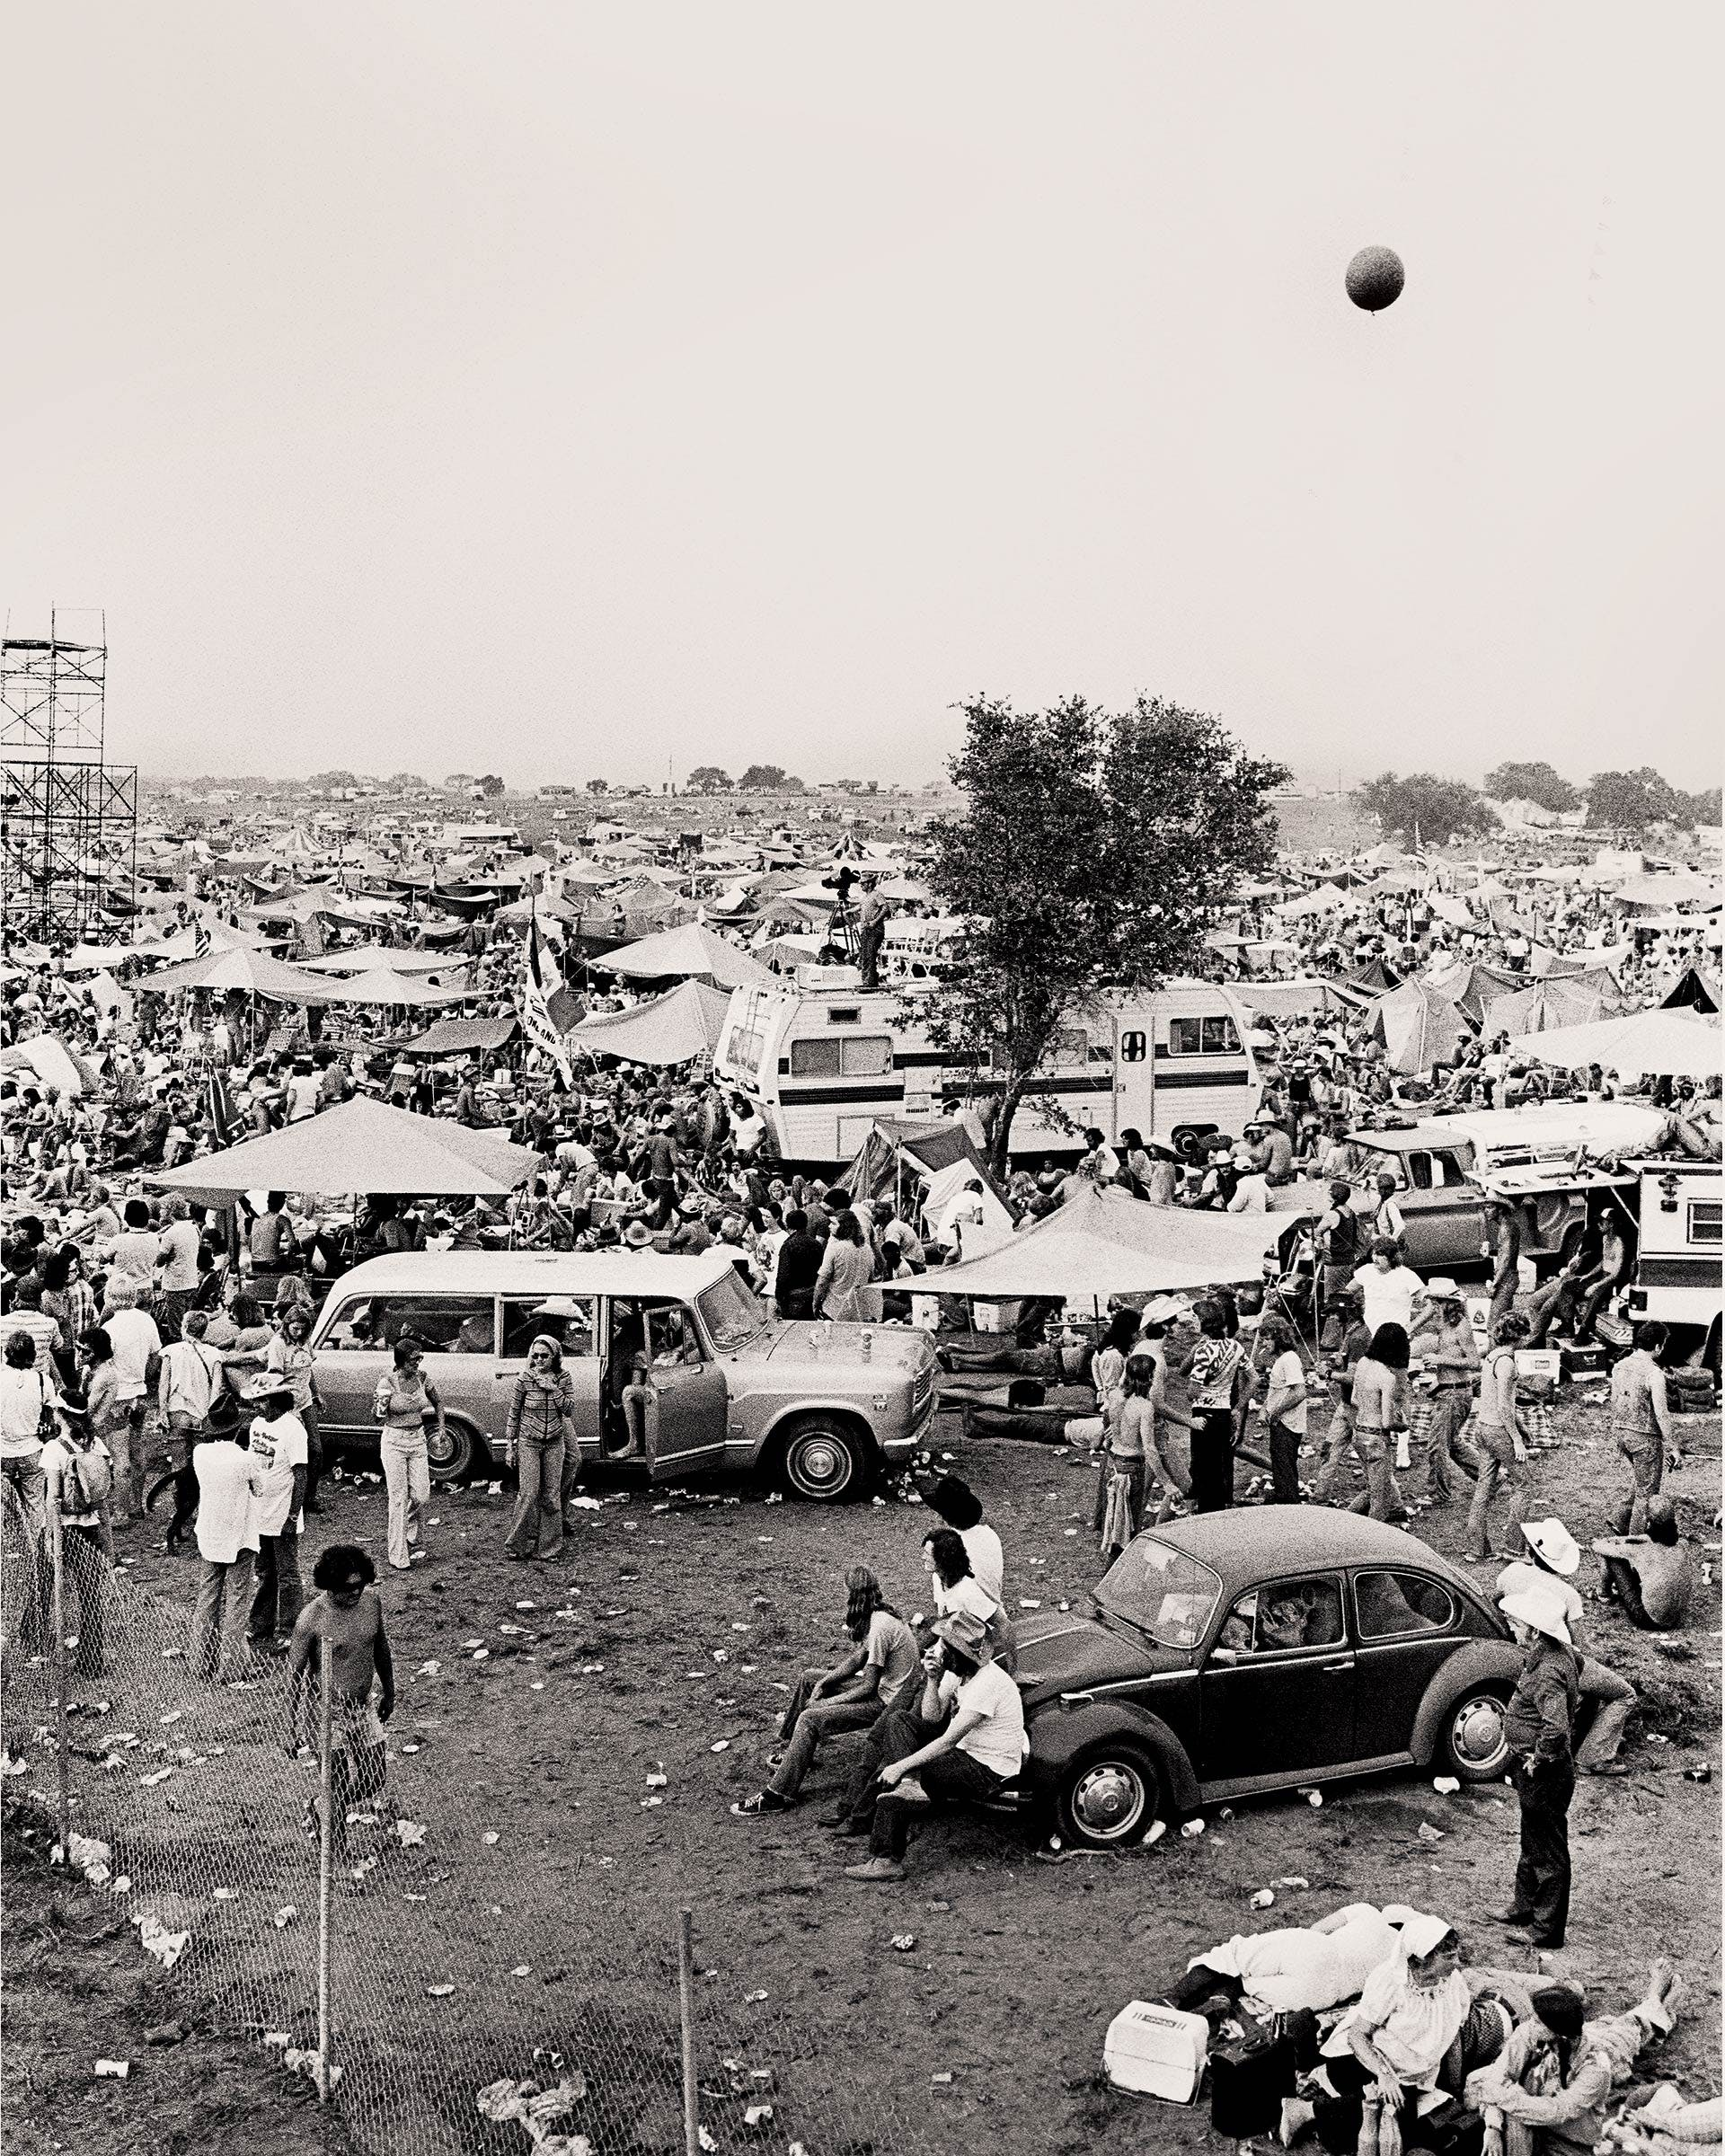 The crowd at Willie's Fourth of July Picnic in Gonzales in 1976.